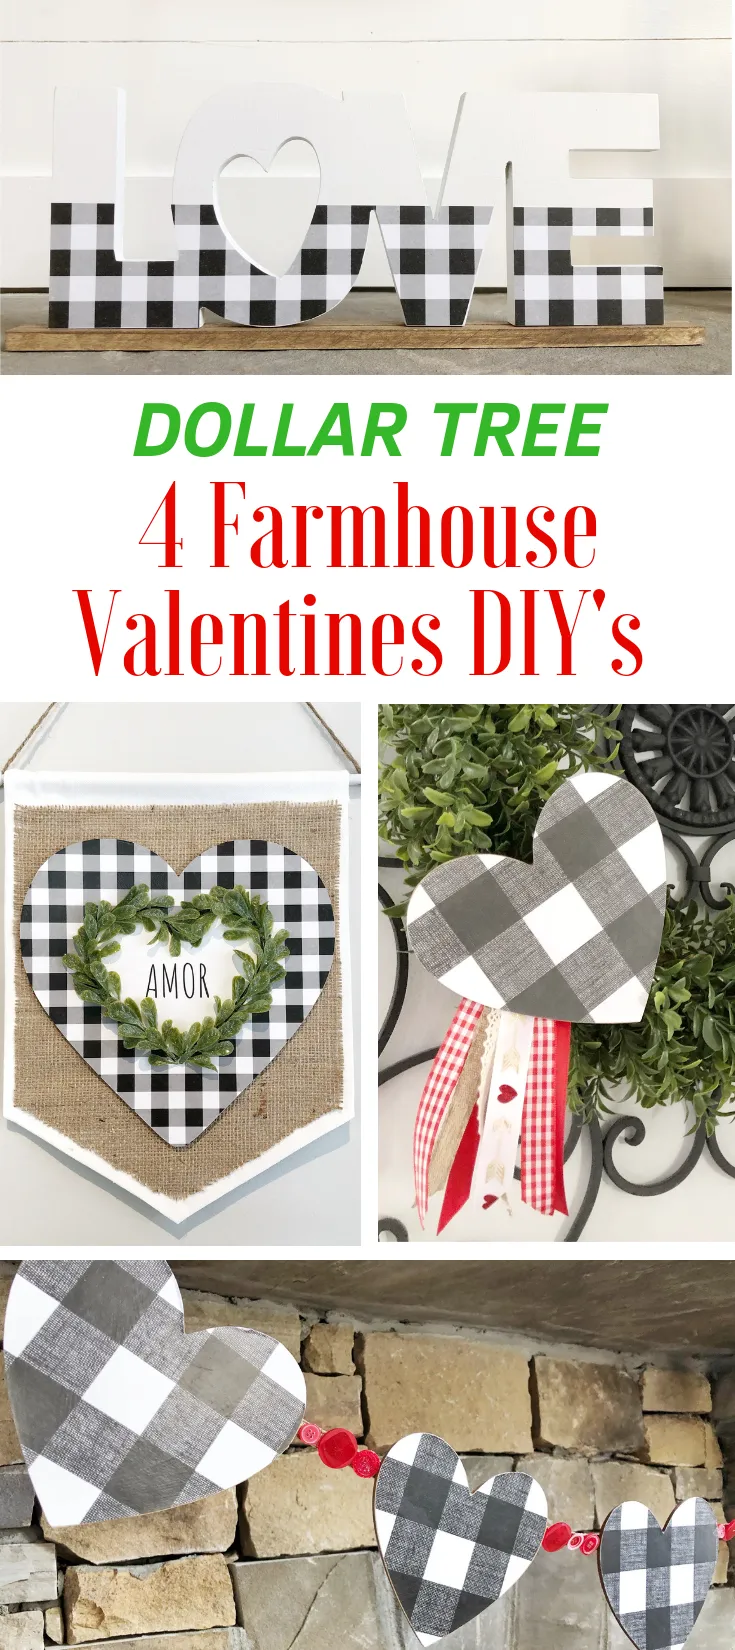 4 Farmhouse Valentine's DIYs - The Latina Next Door